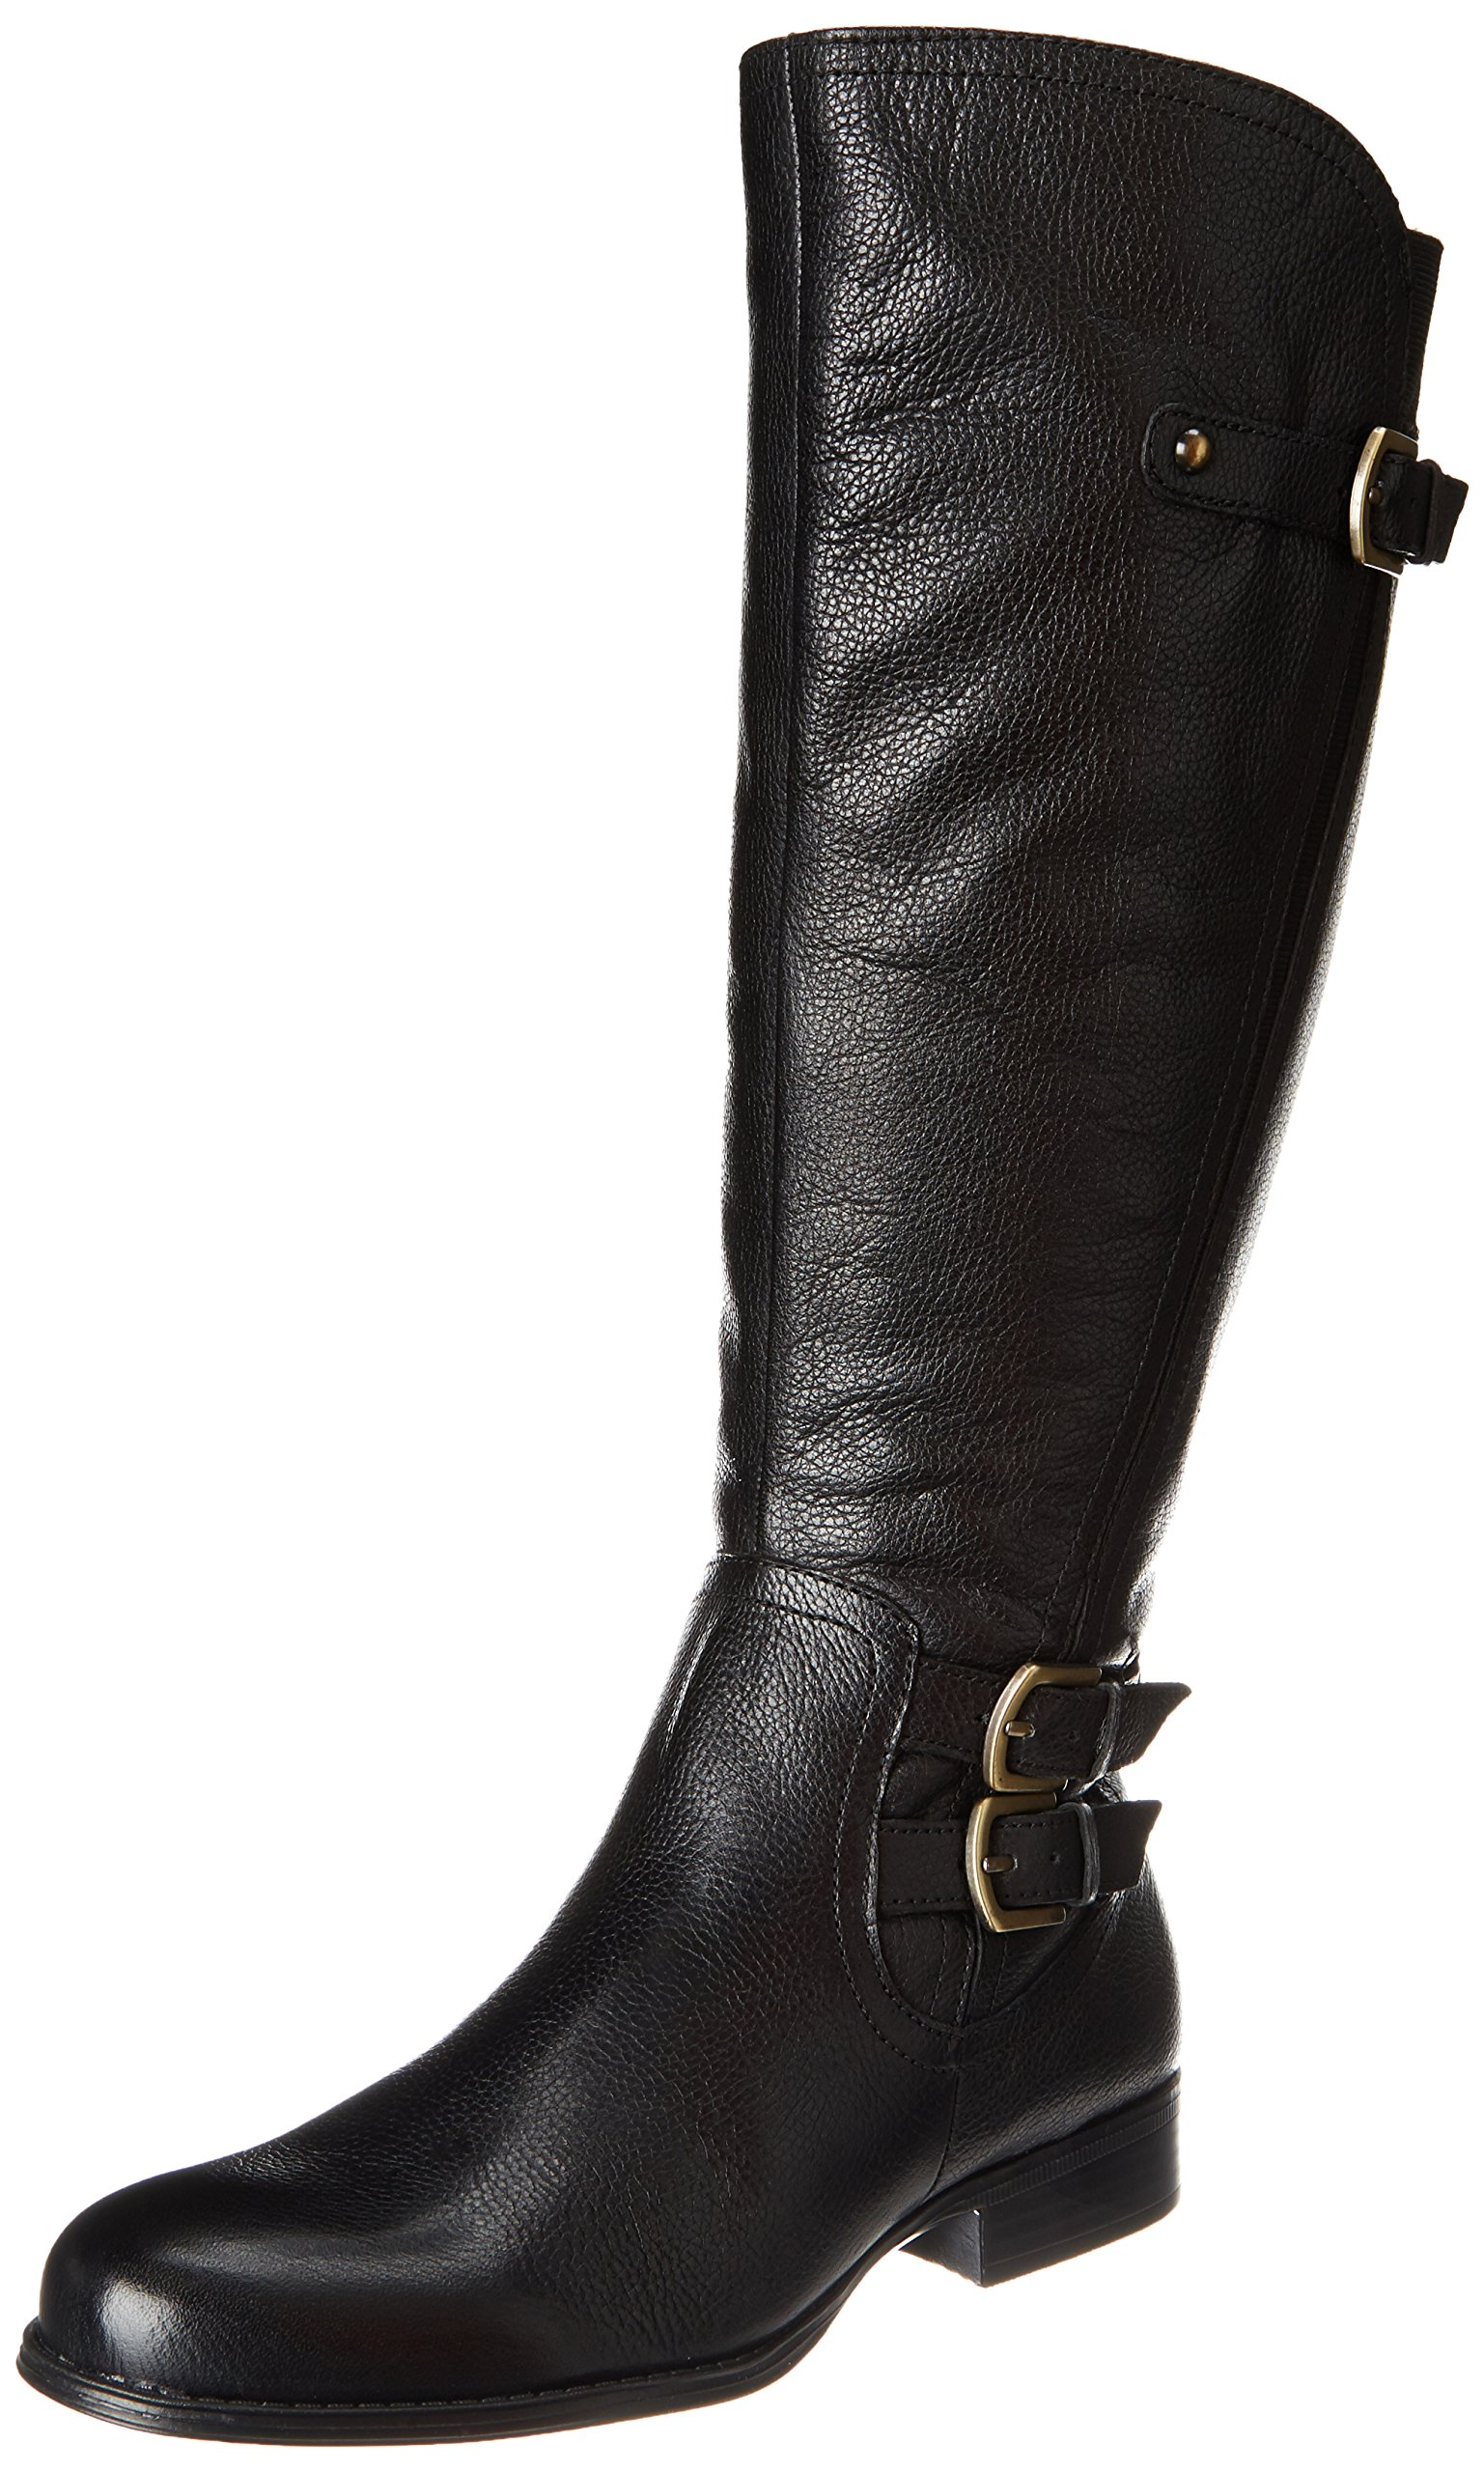 Naturalizer New Black Women's Shoes 4.5W Knee-High Leather Boots by Naturalizer